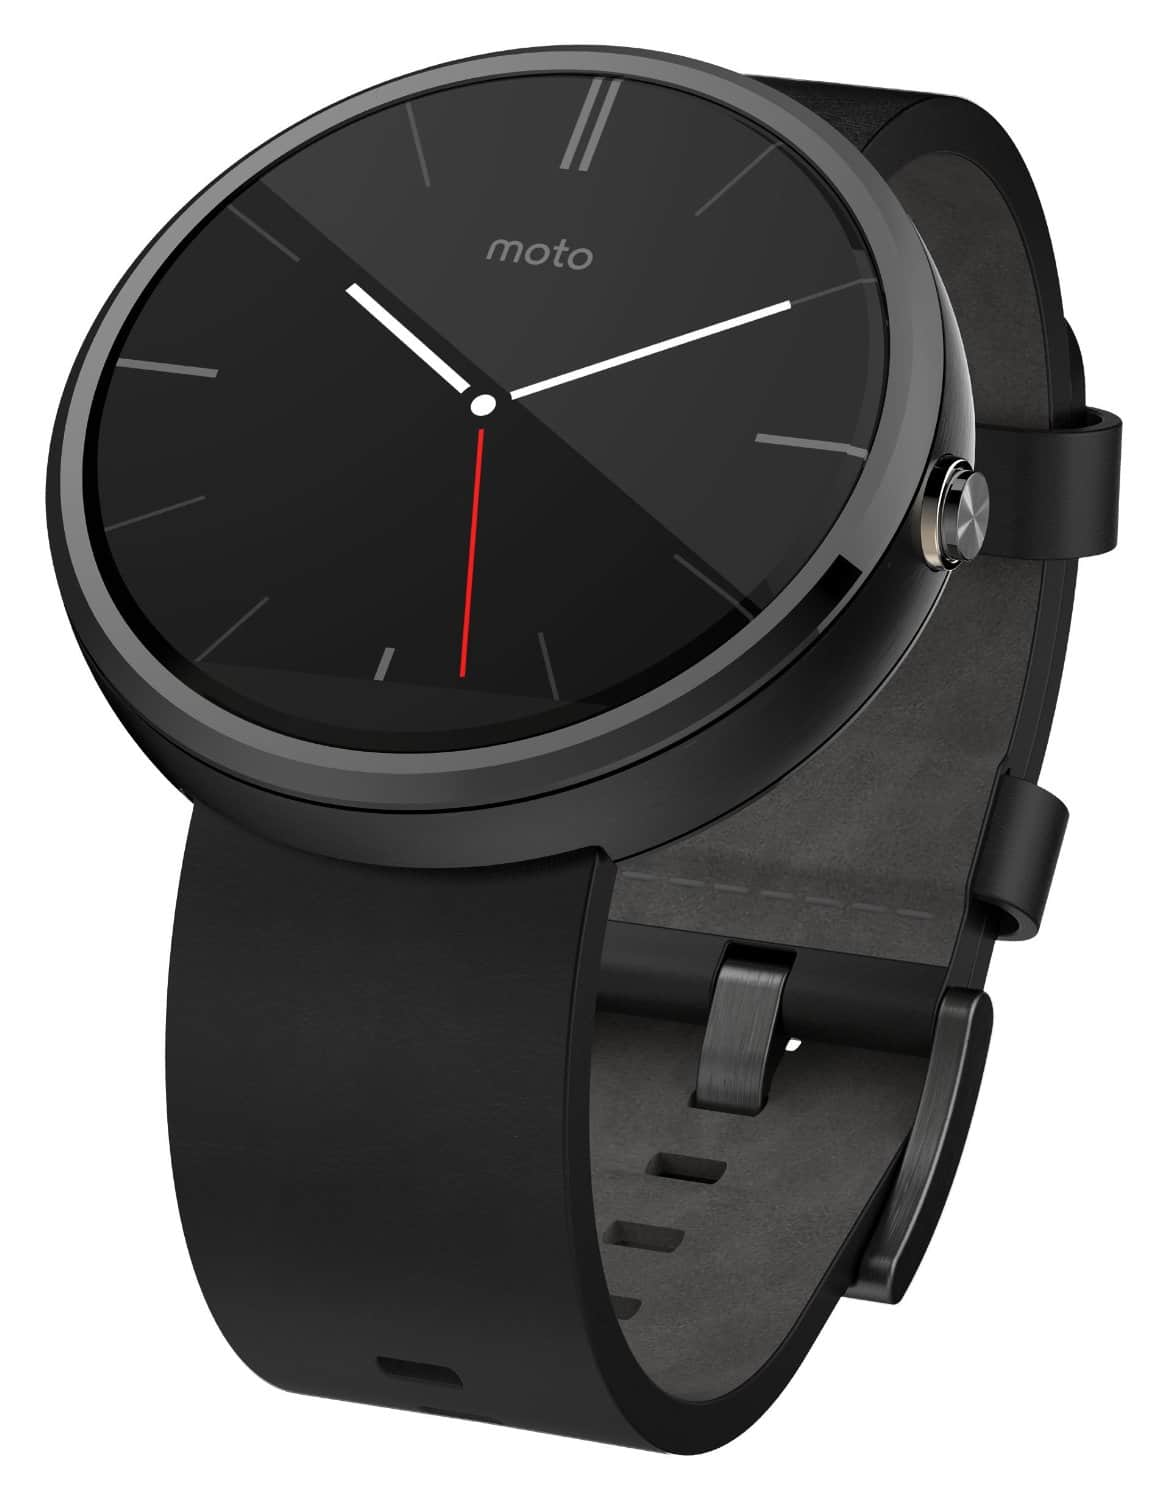 Motorola Moto 360 Smartwatch for Android Devices  From $120 + Free Shipping